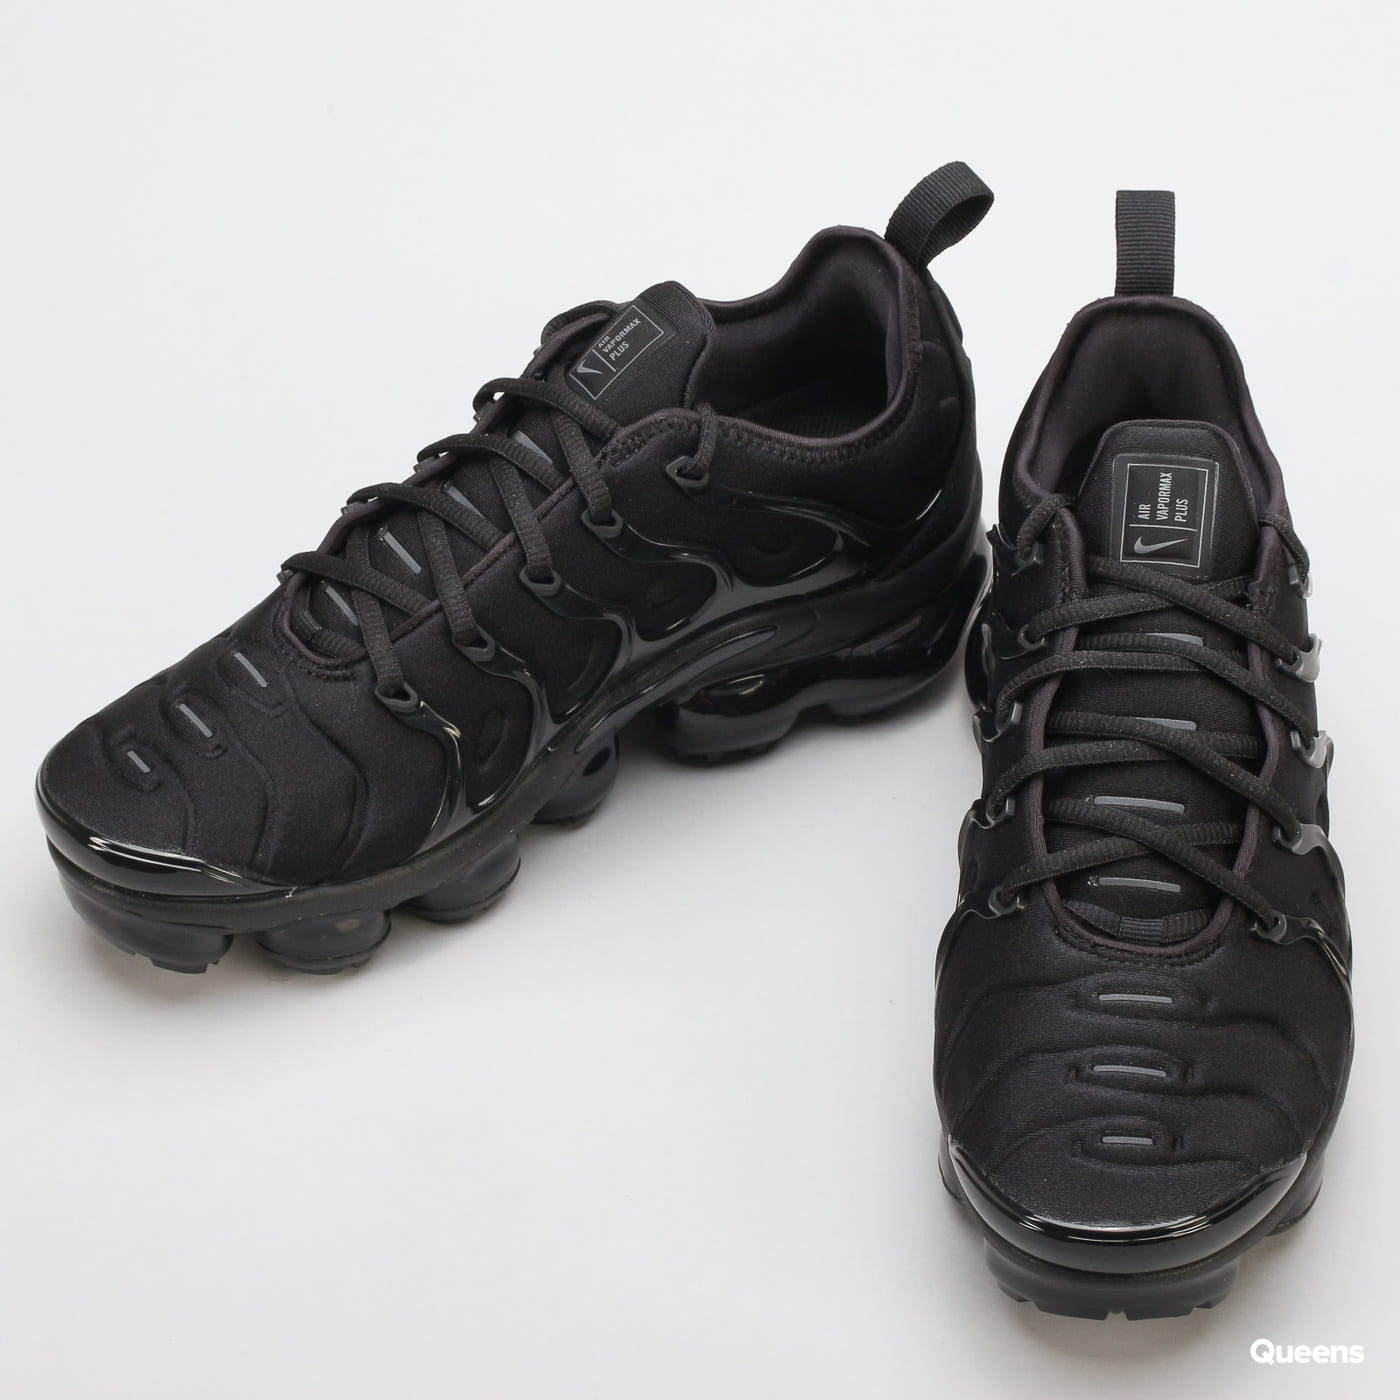 Nike Air Vapormax Plus black / black - dark grey